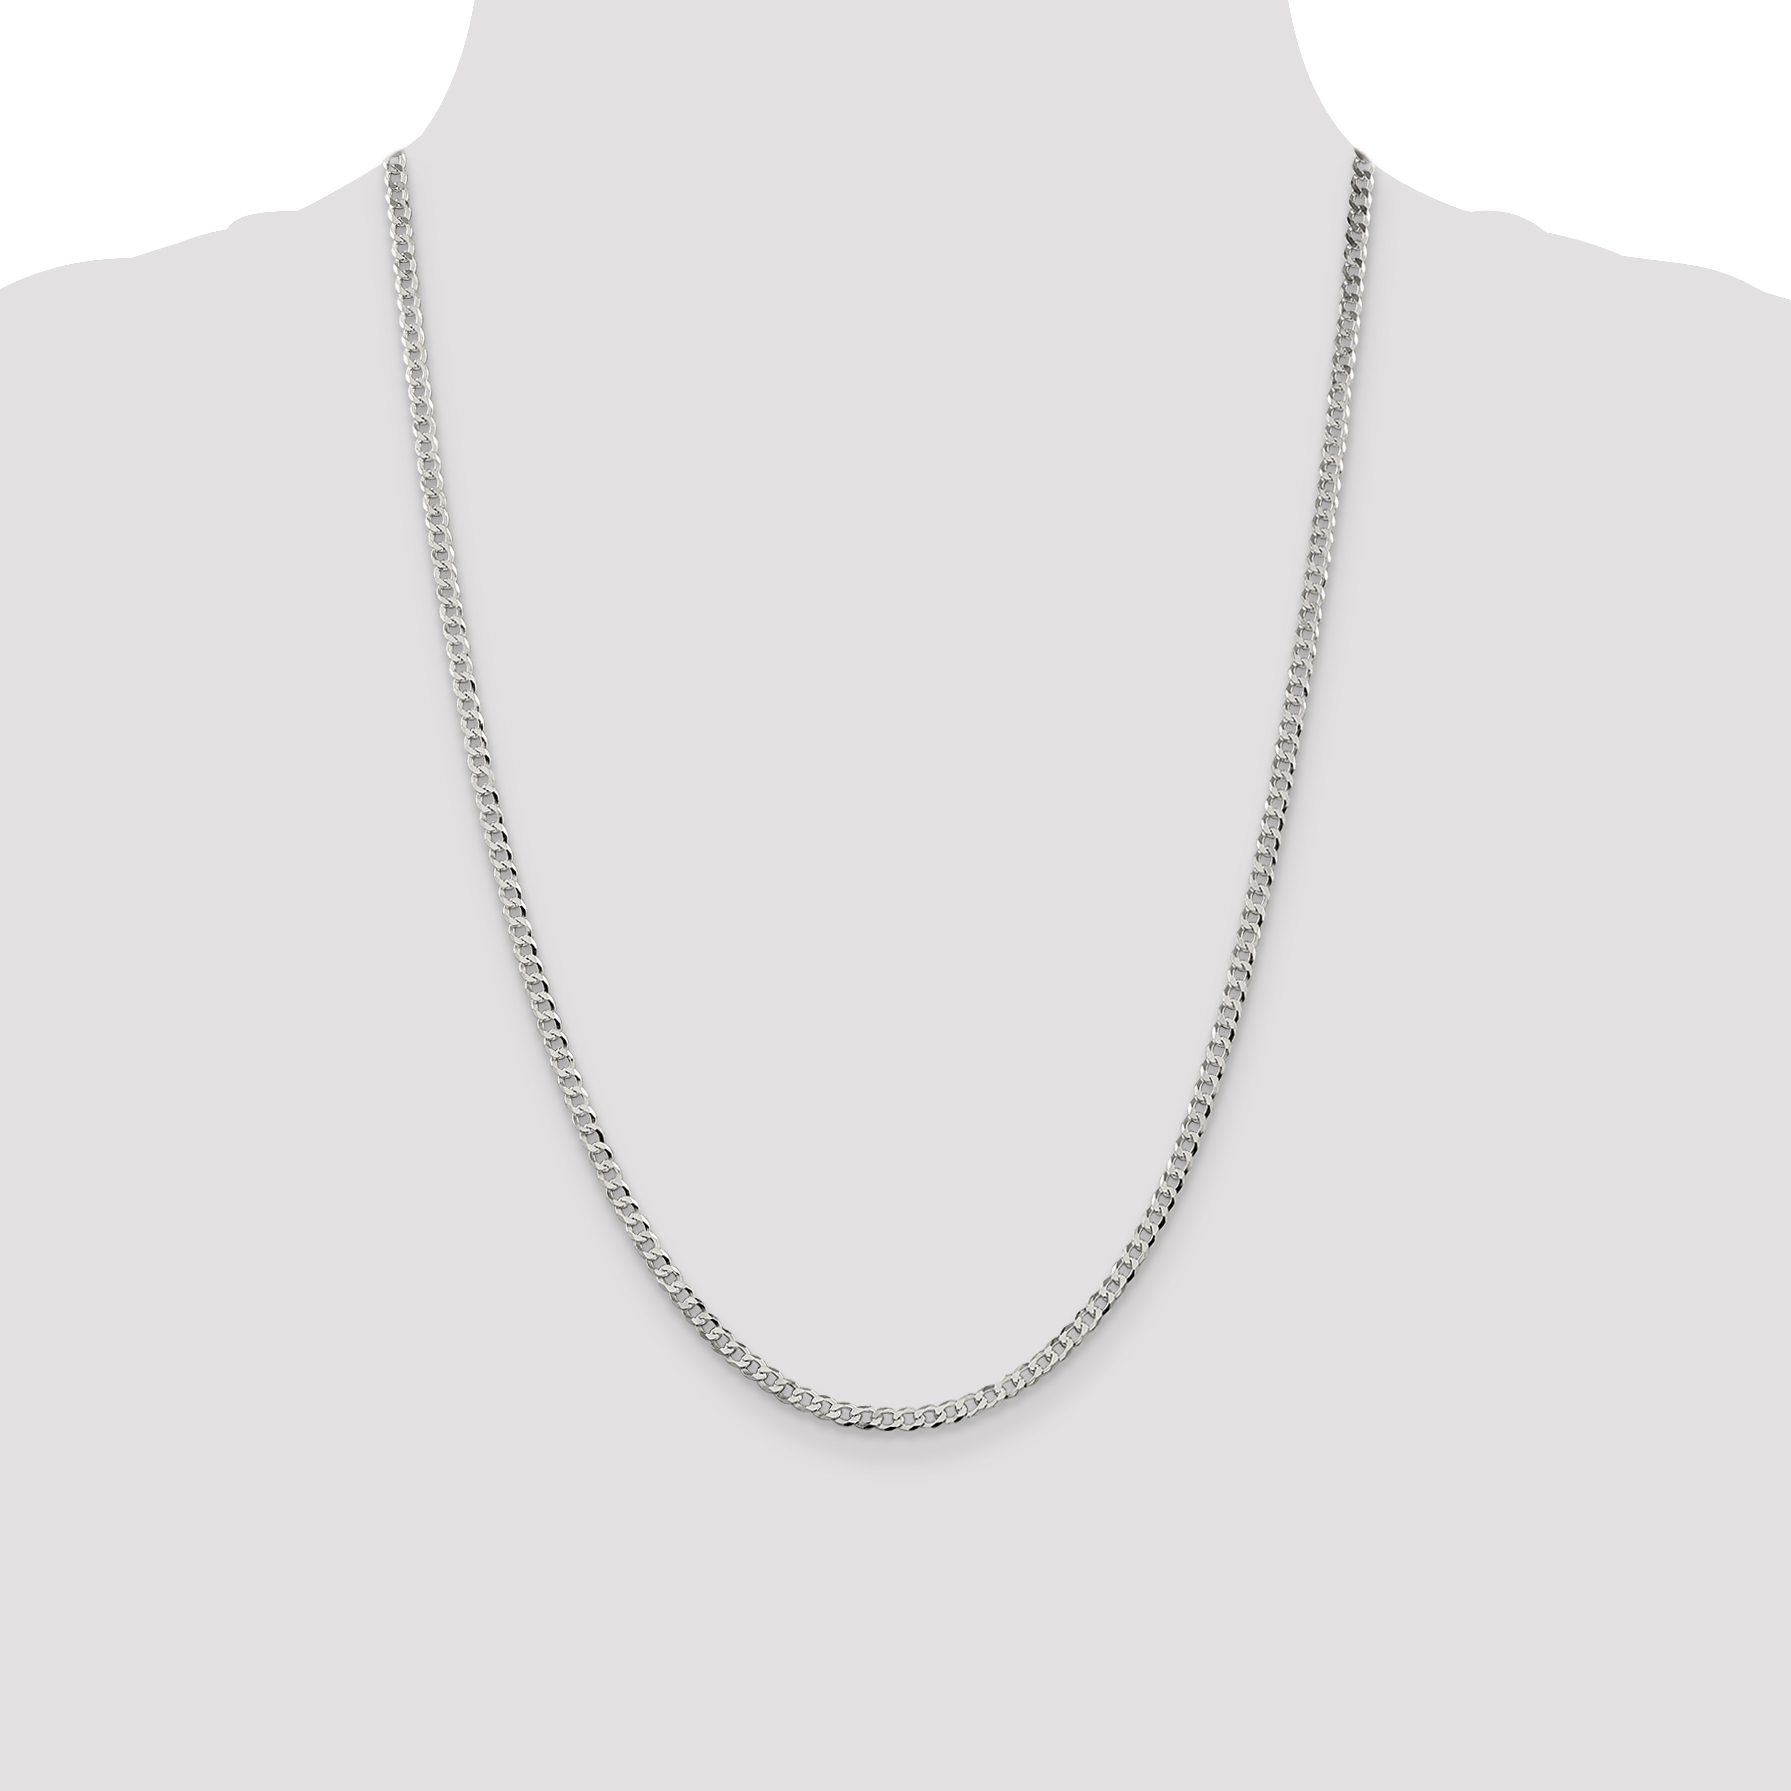 Solid 925 Sterling Silver 3.2mm Beveled Curb Link Cuban Chain Necklace